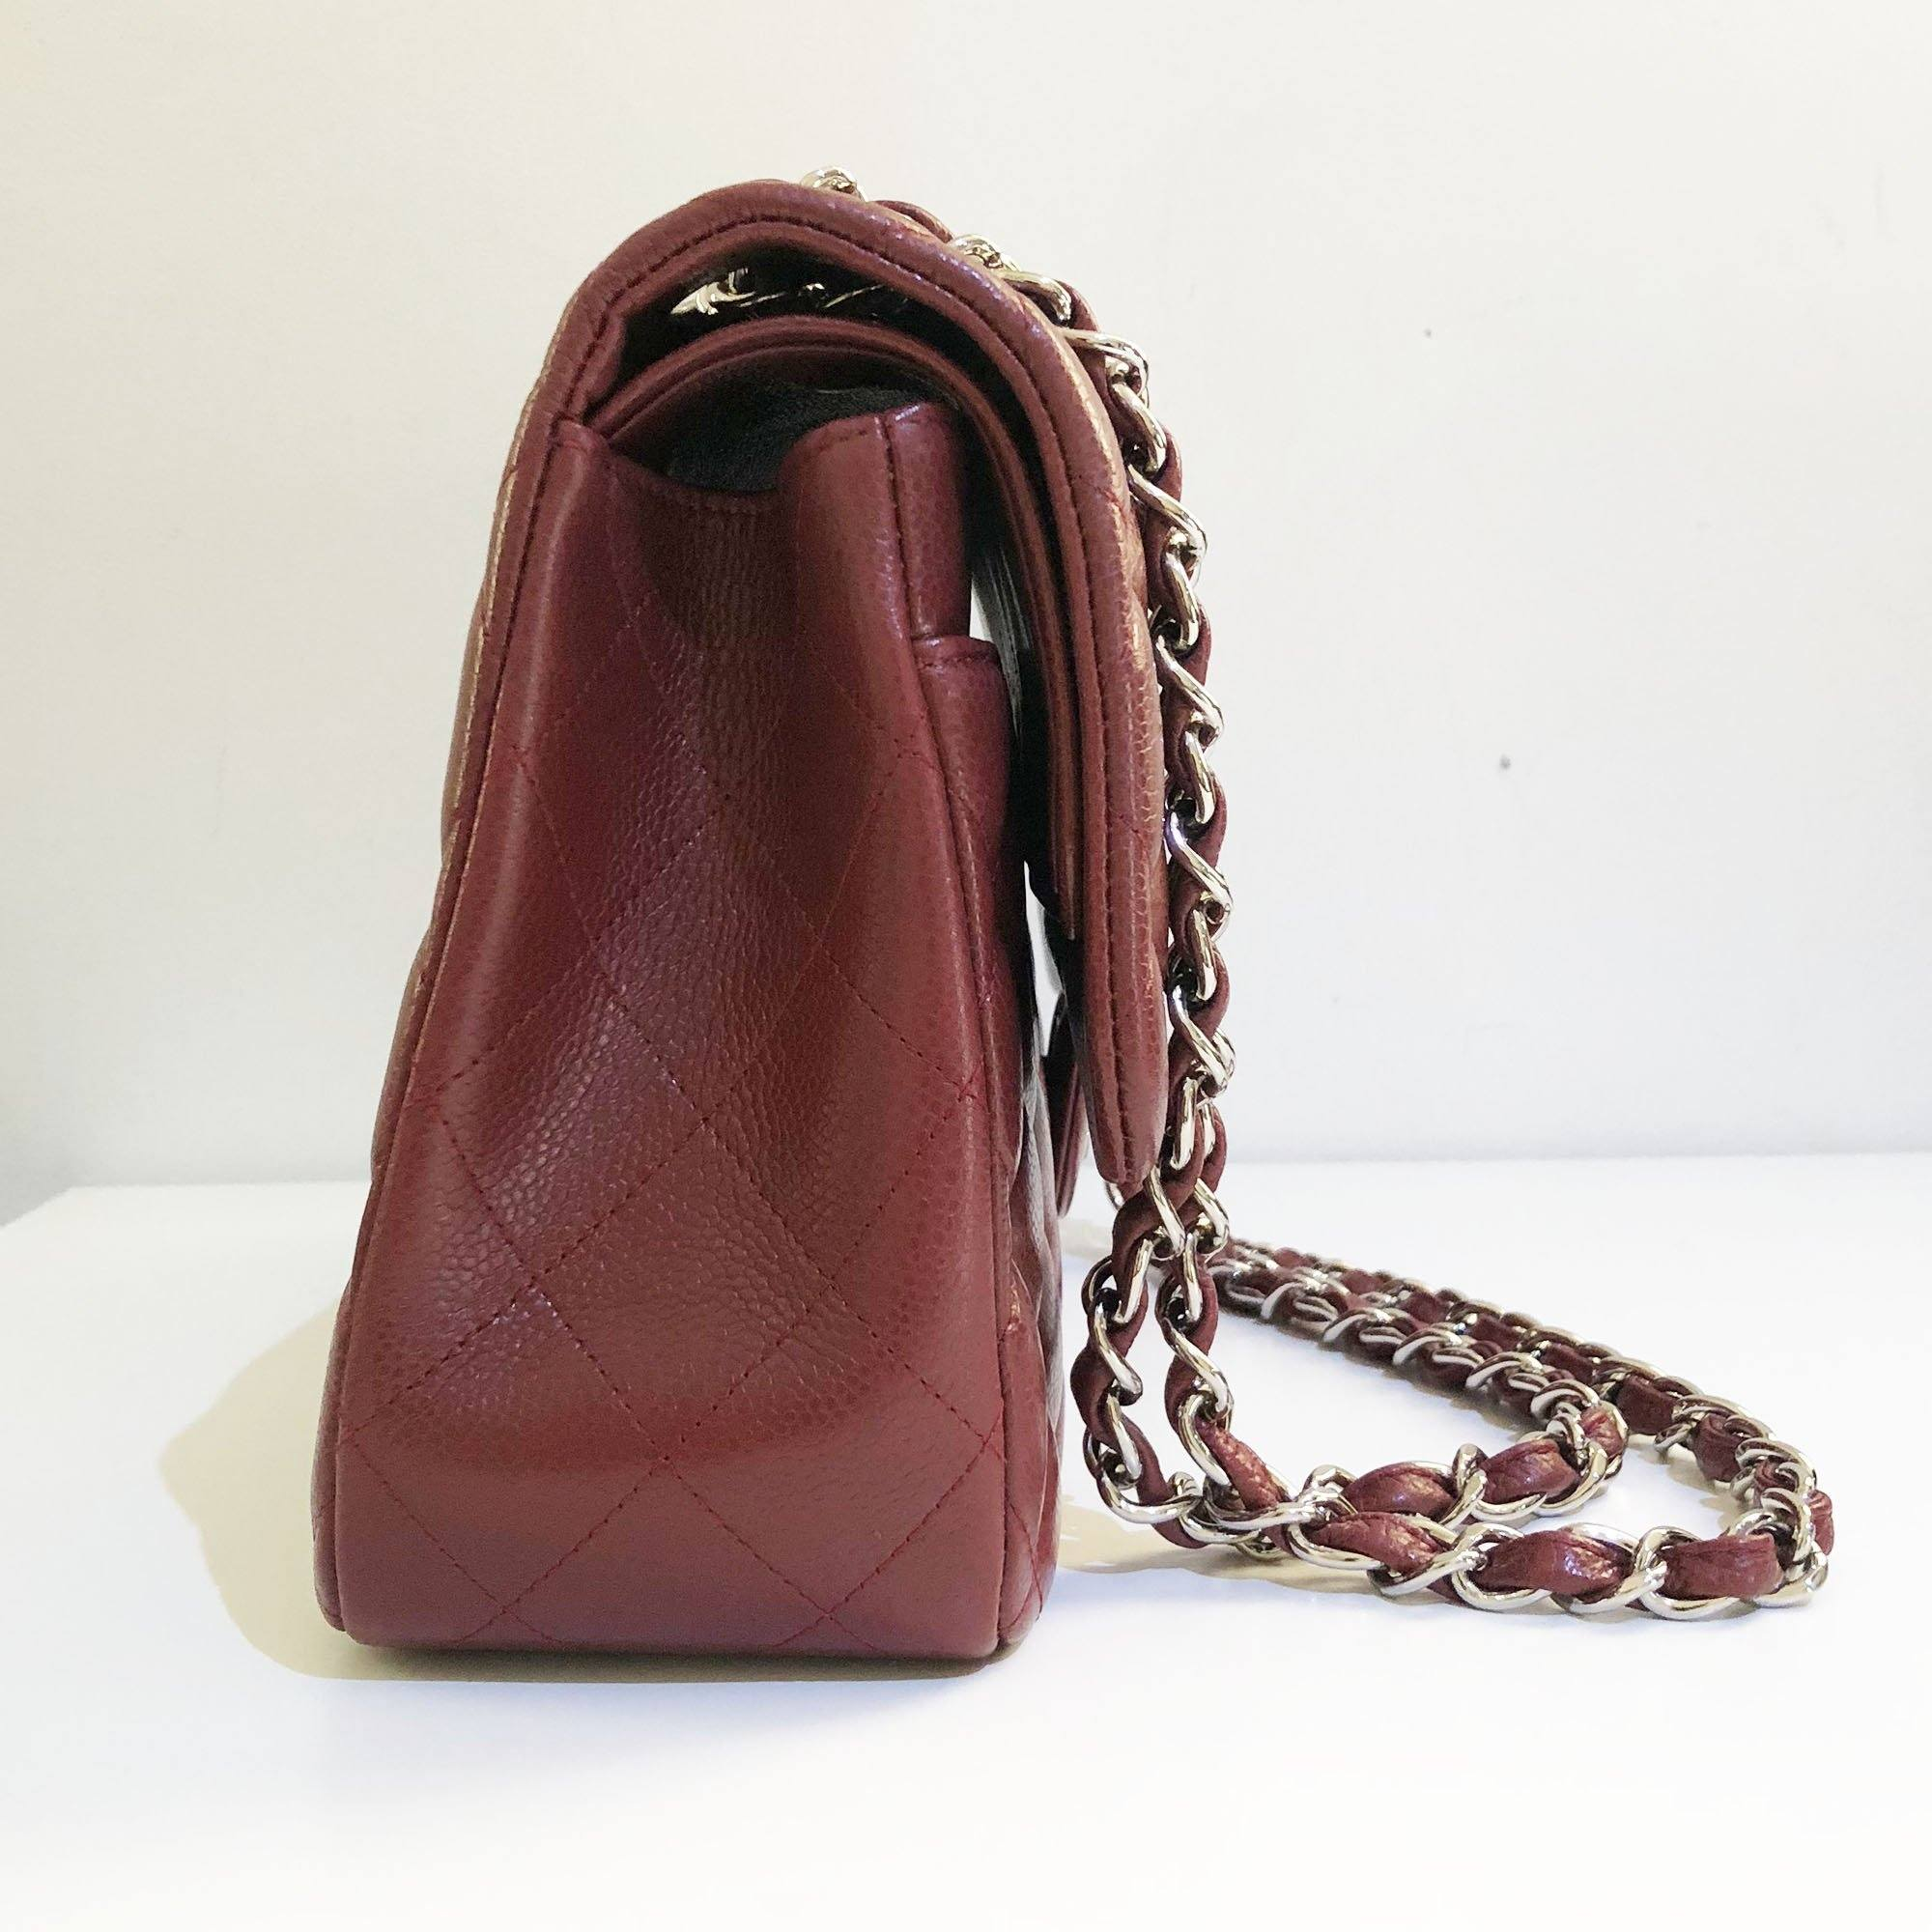 Chanel Burgundy Caviar Jumbo Double Flap Bag